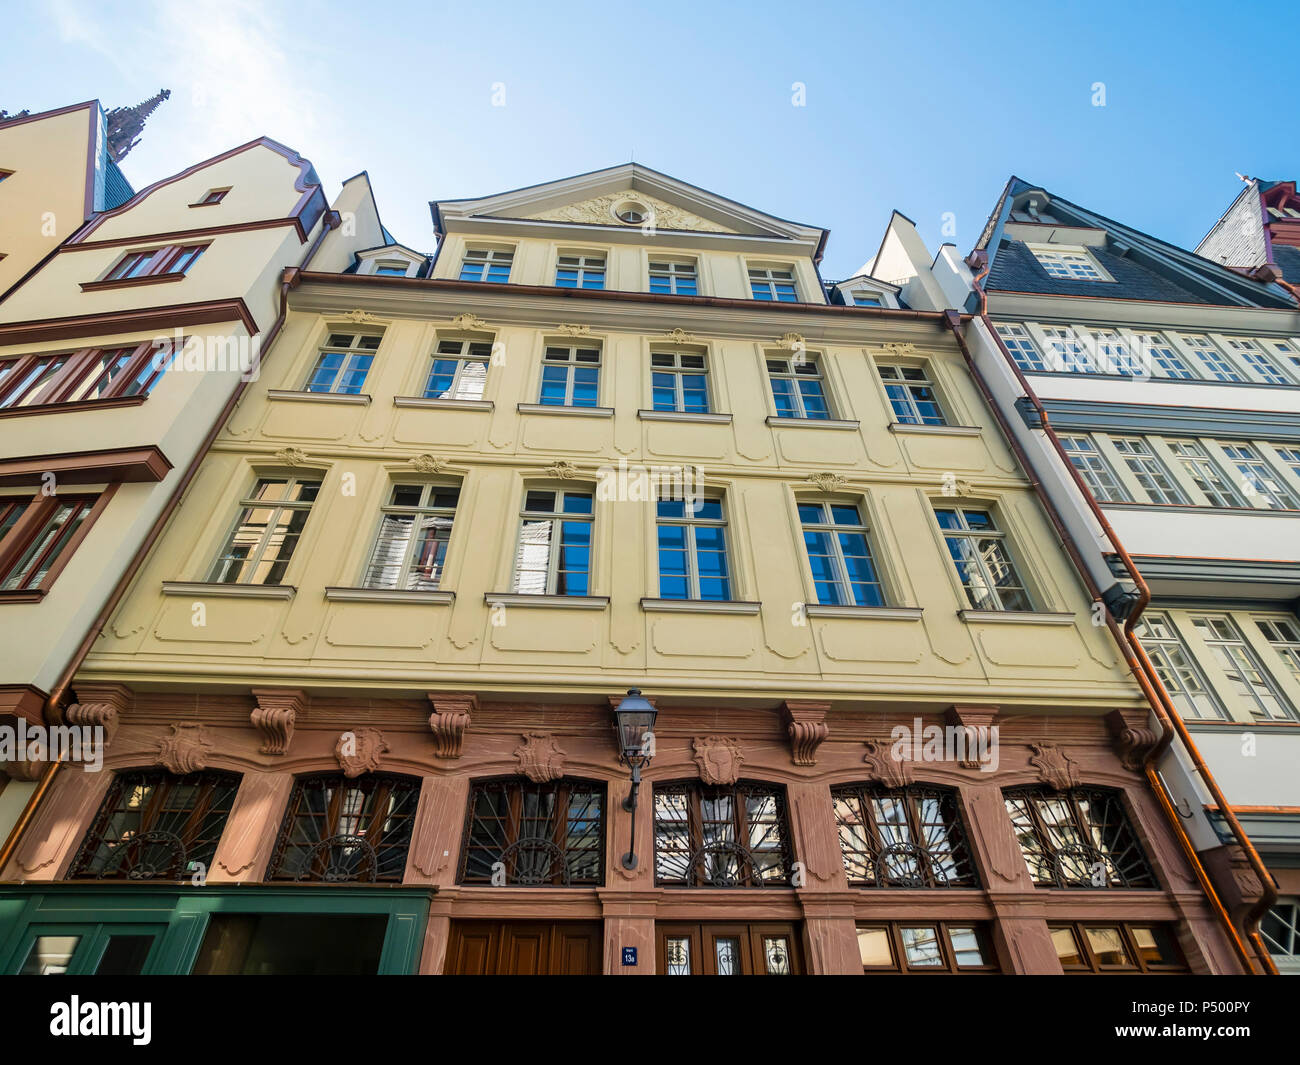 Germany, Hesse, Frankfurt, Old town, reconstructions of houses, replica of Gruene Linde - Stock Image